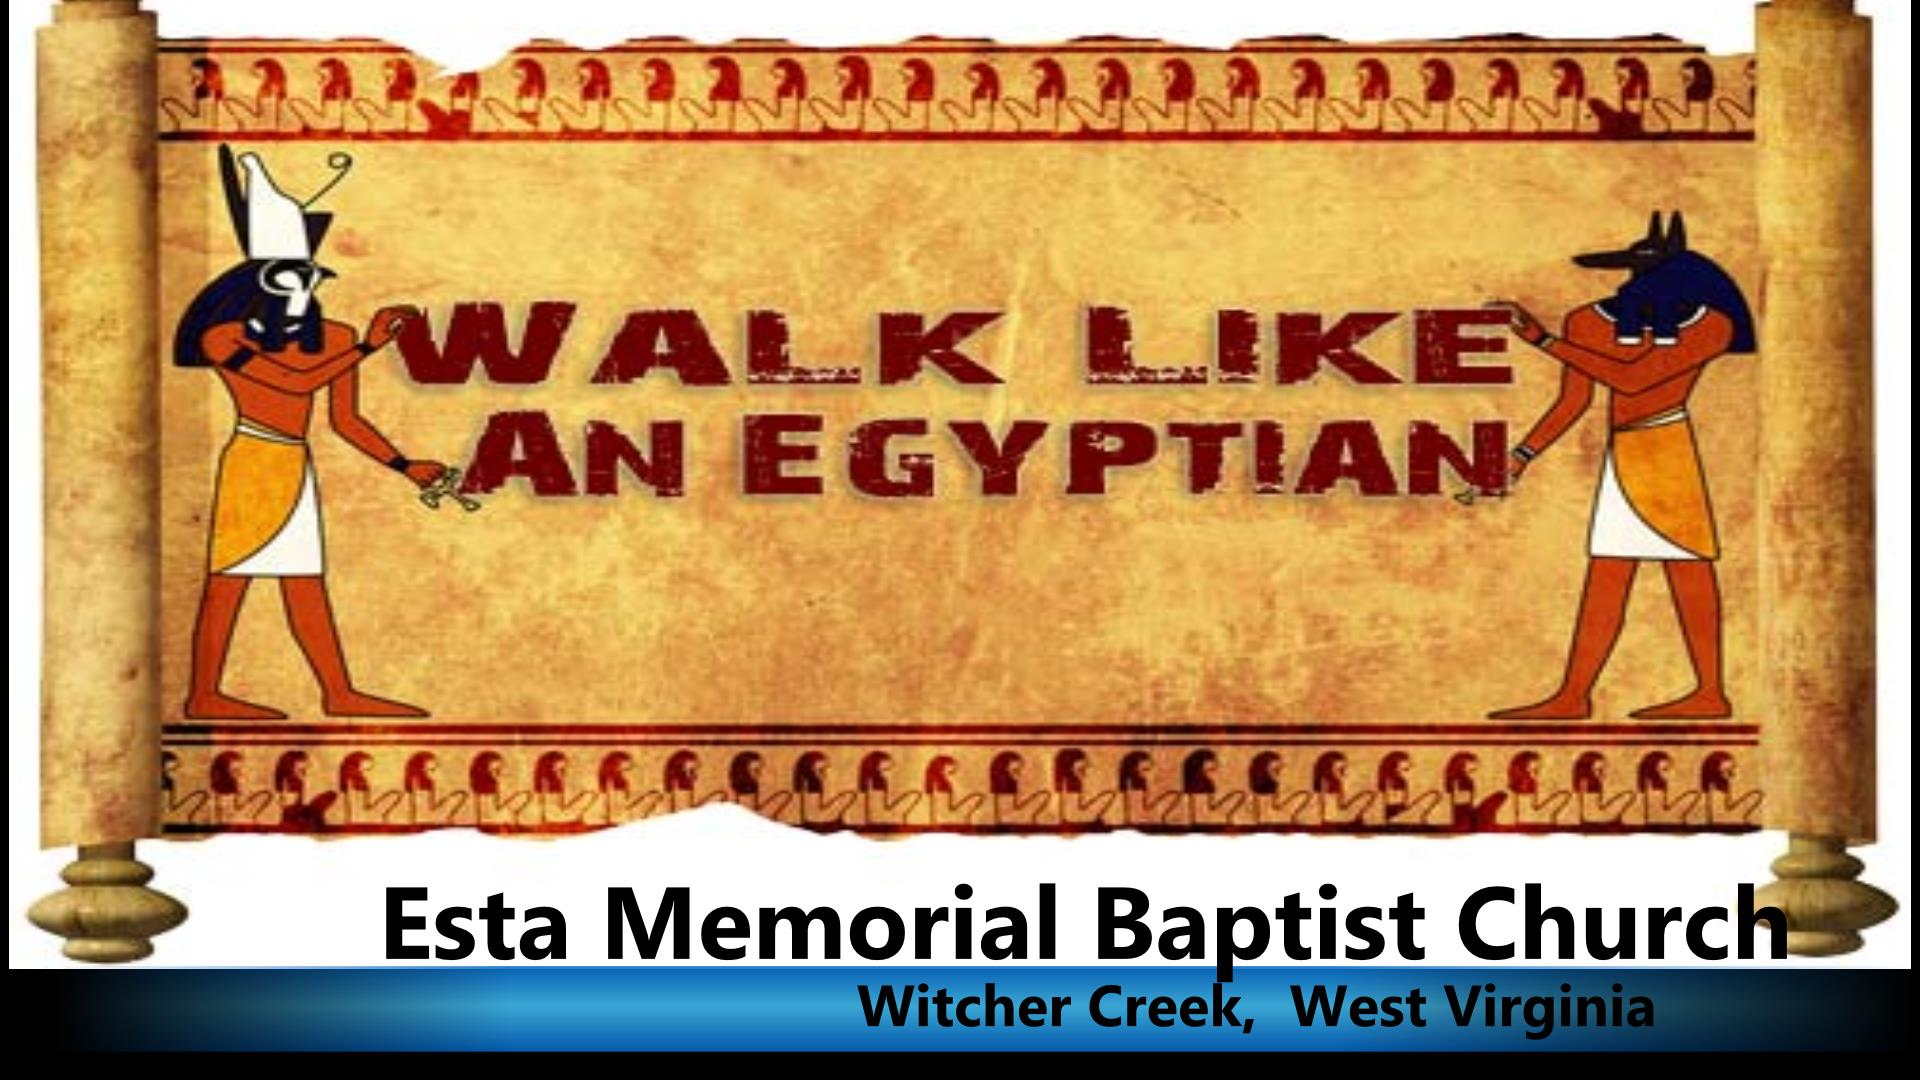 Walk Like Egyptian